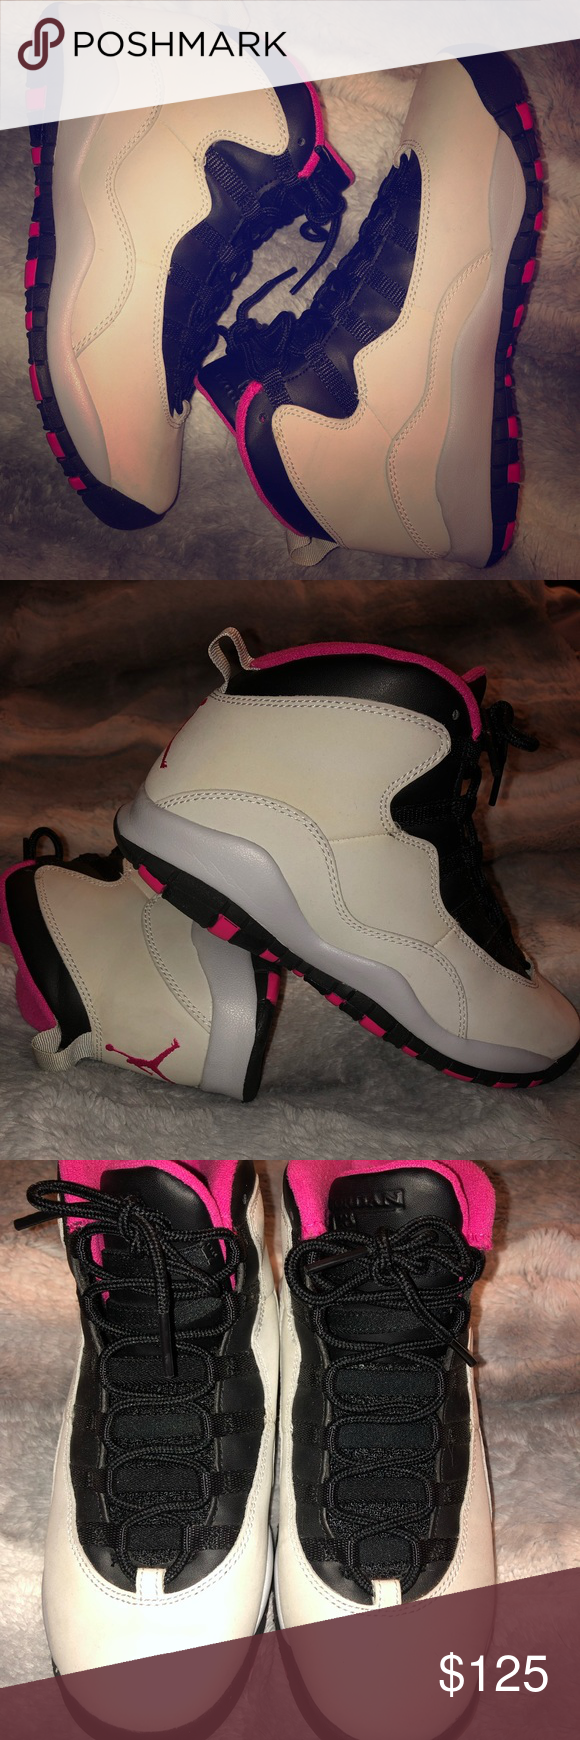 1162c437e96 Air Jordan Retro GG 'Vivid Pink' This grade-school edition of the Air  Jordan 10 Retro GG 'Vivid Pink' white leather upper with a black and Vivid  Pink ...